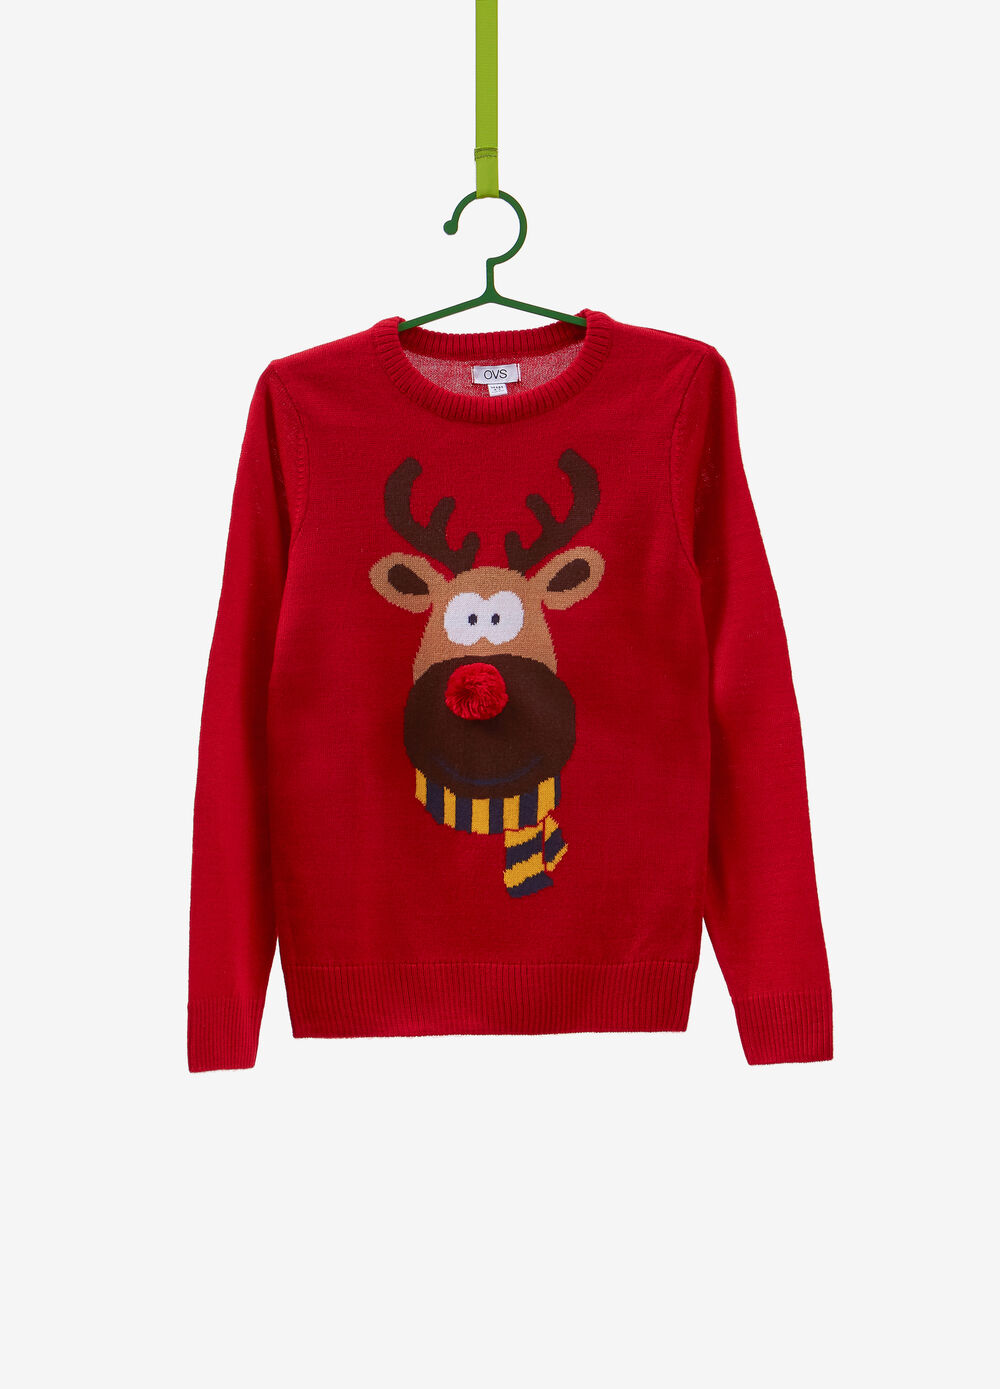 Christmas sweater with reindeer embroidery and pompom